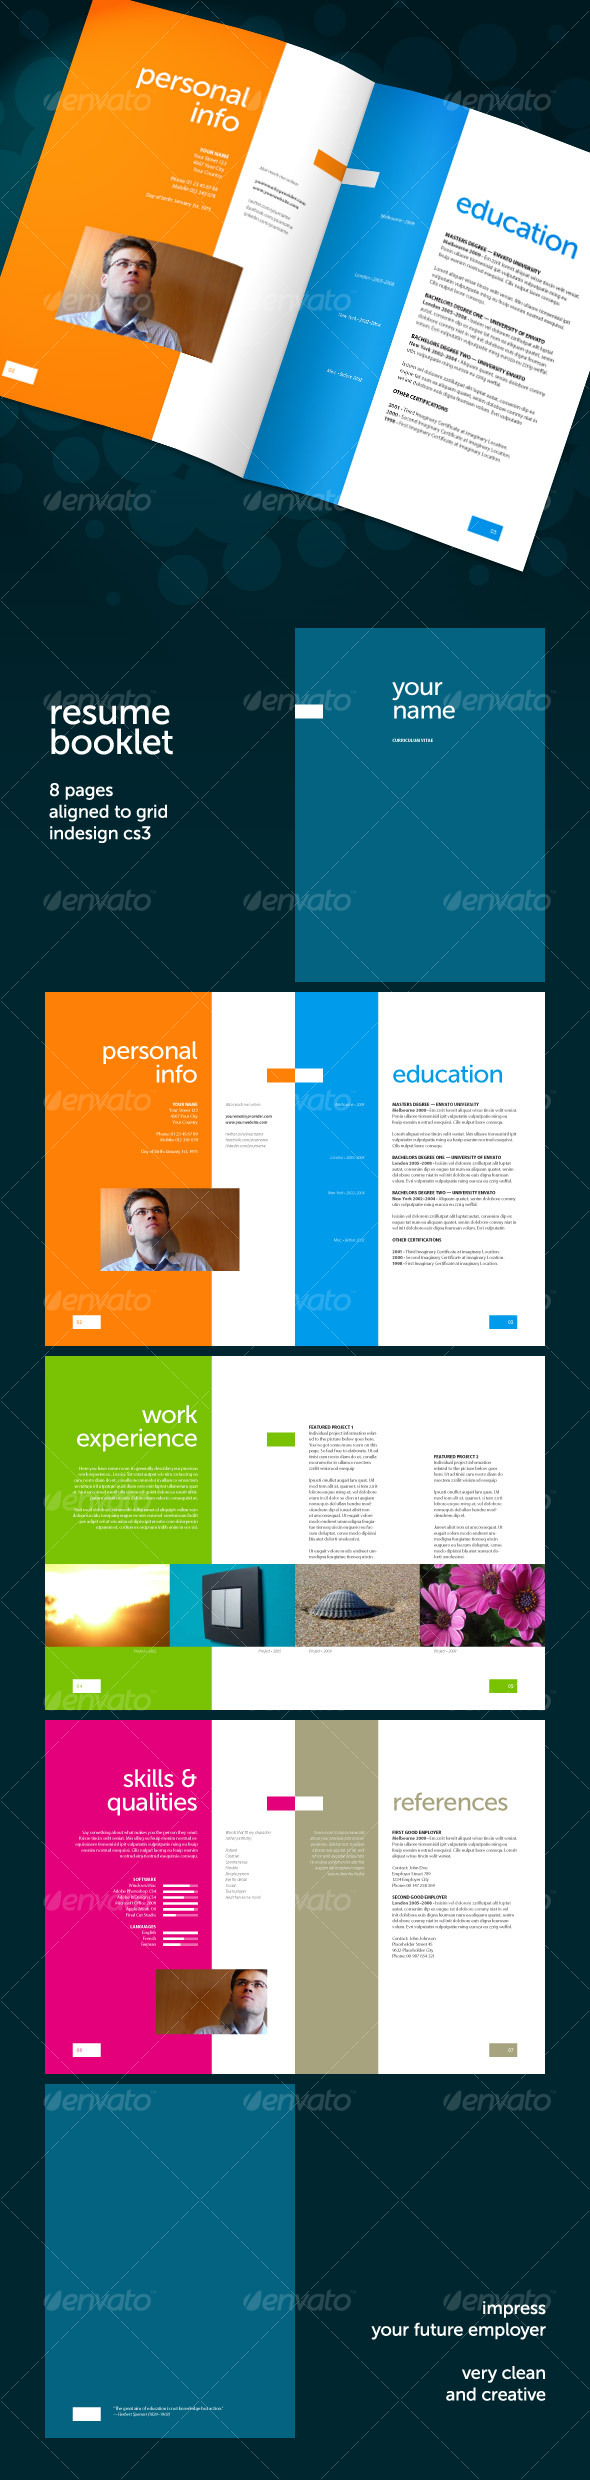 GraphicRiver Resume Booklet 8 pages 55049